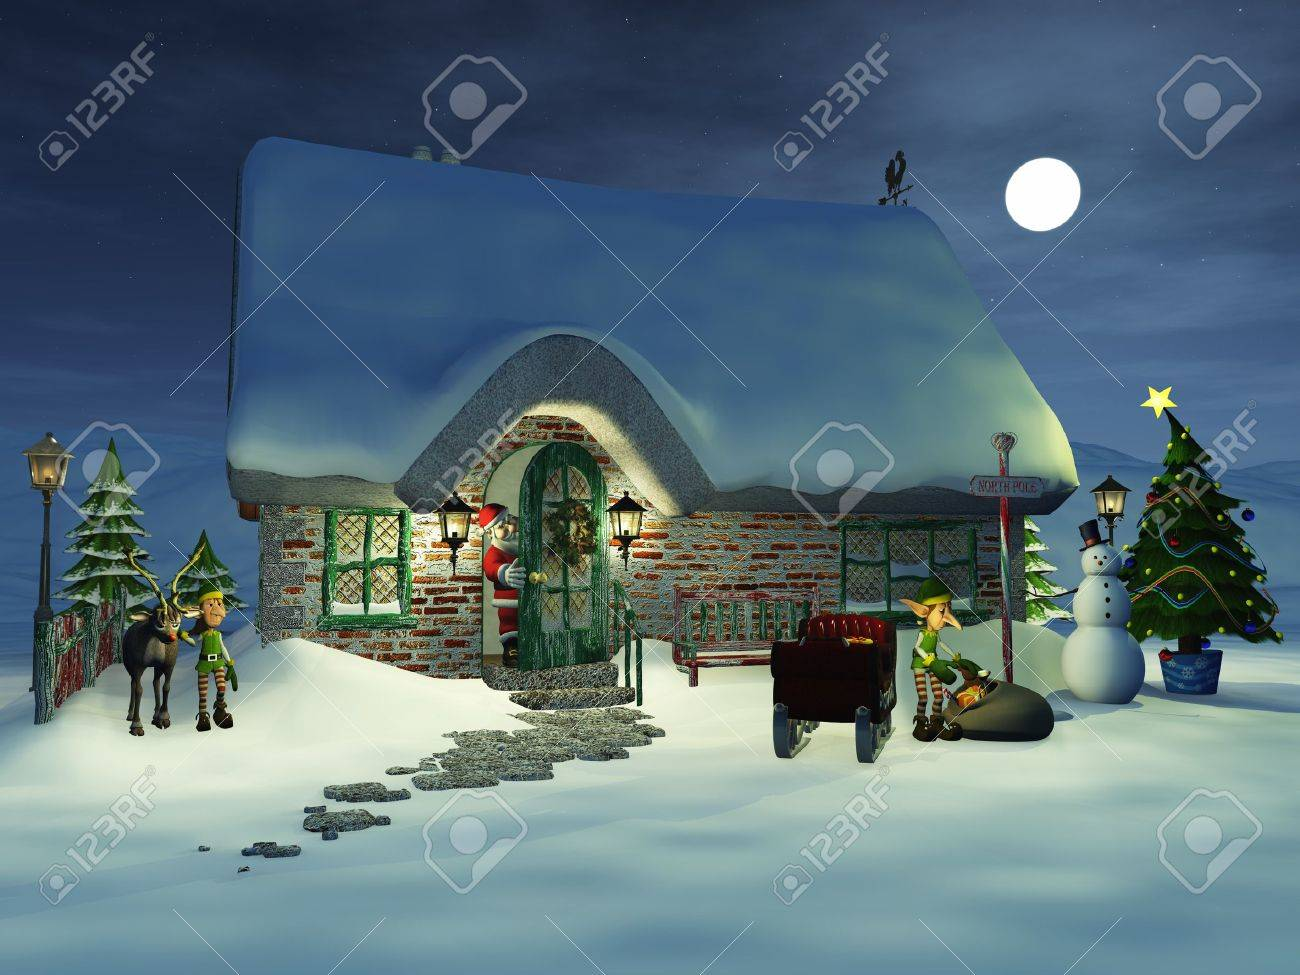 Cartoon Santa Claus keeping an eye on his elves that are preparing the sledge. One elf is getting Rudolph the reindeer and the other is packing gifts. Stock Photo - 11558480